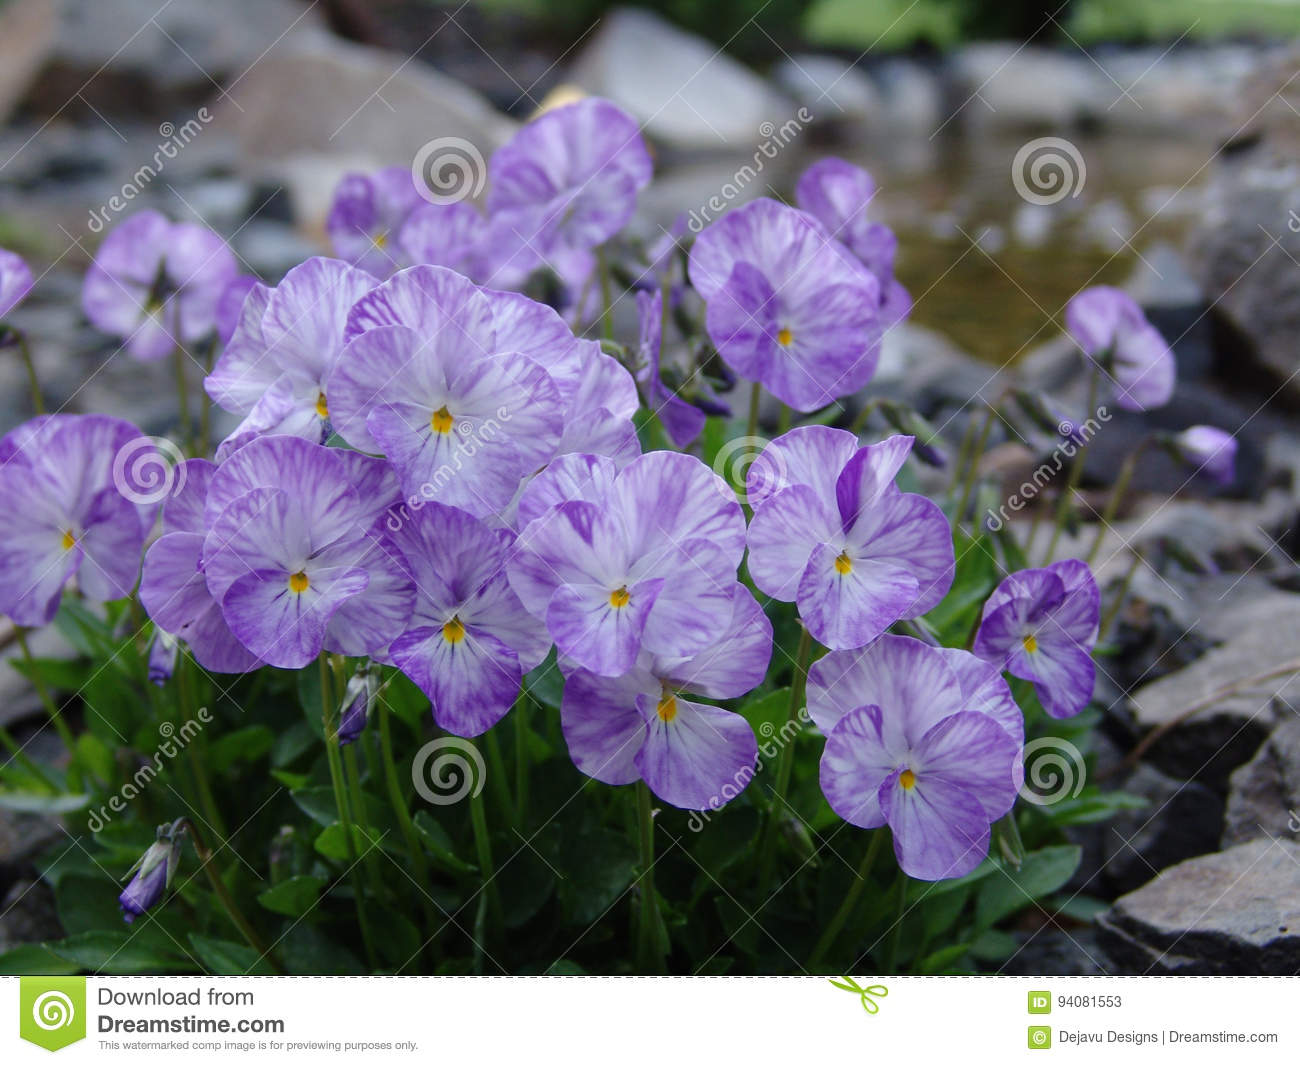 Light Purple And White Pansies Flowering In A Garden Stock Image